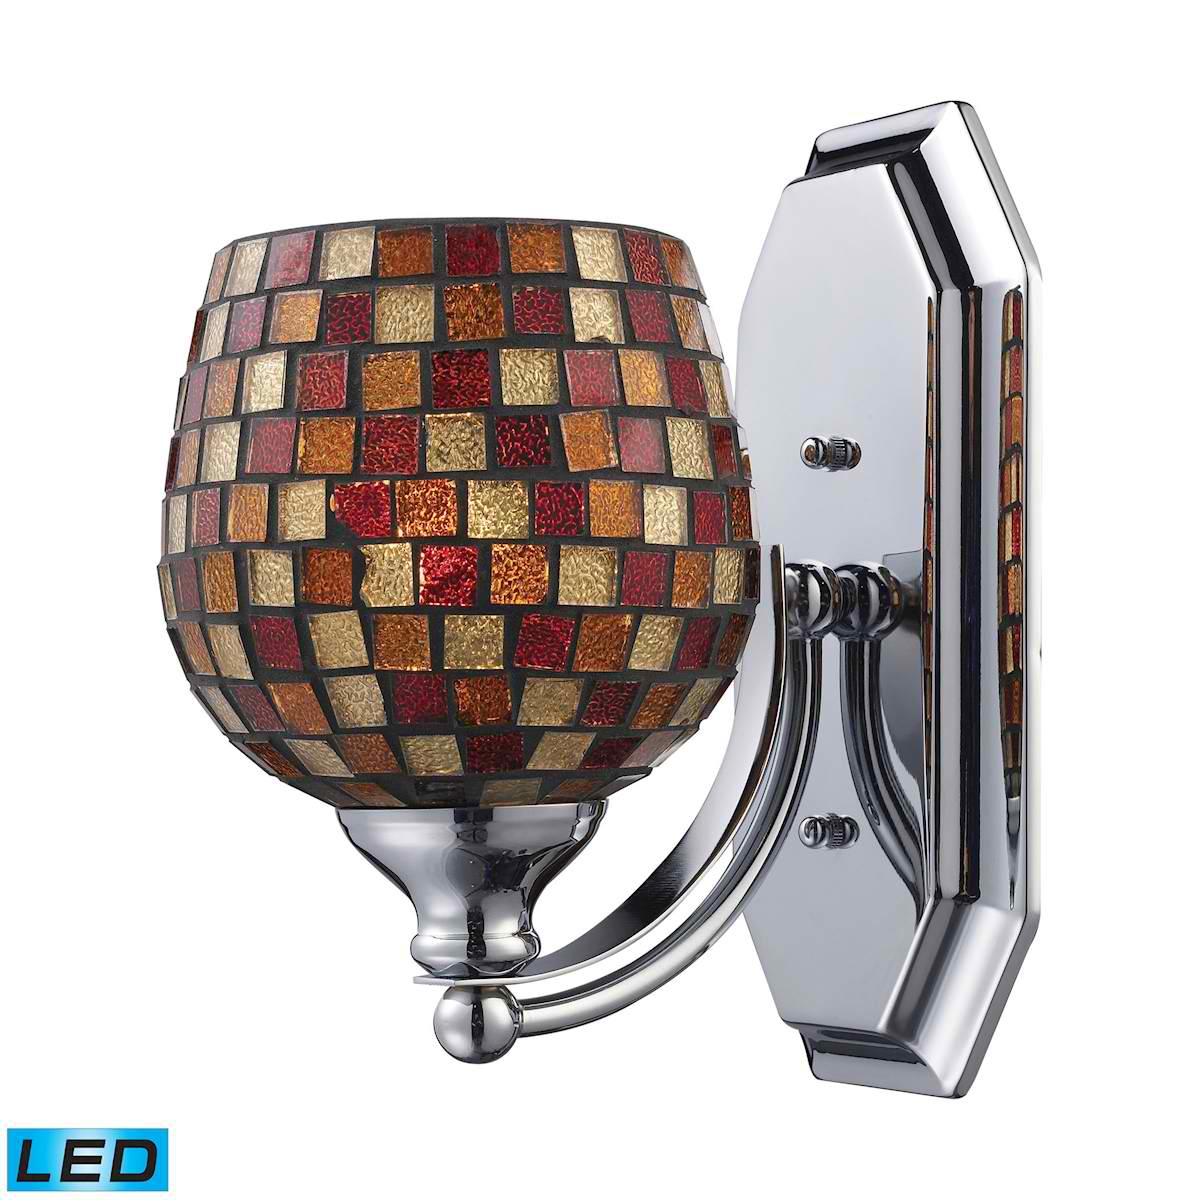 1 Light Vanity in Polished Chrome and Multi Mosaic Glass - LED Offering Up To 800 Lumens (60 Watt Equivalent)